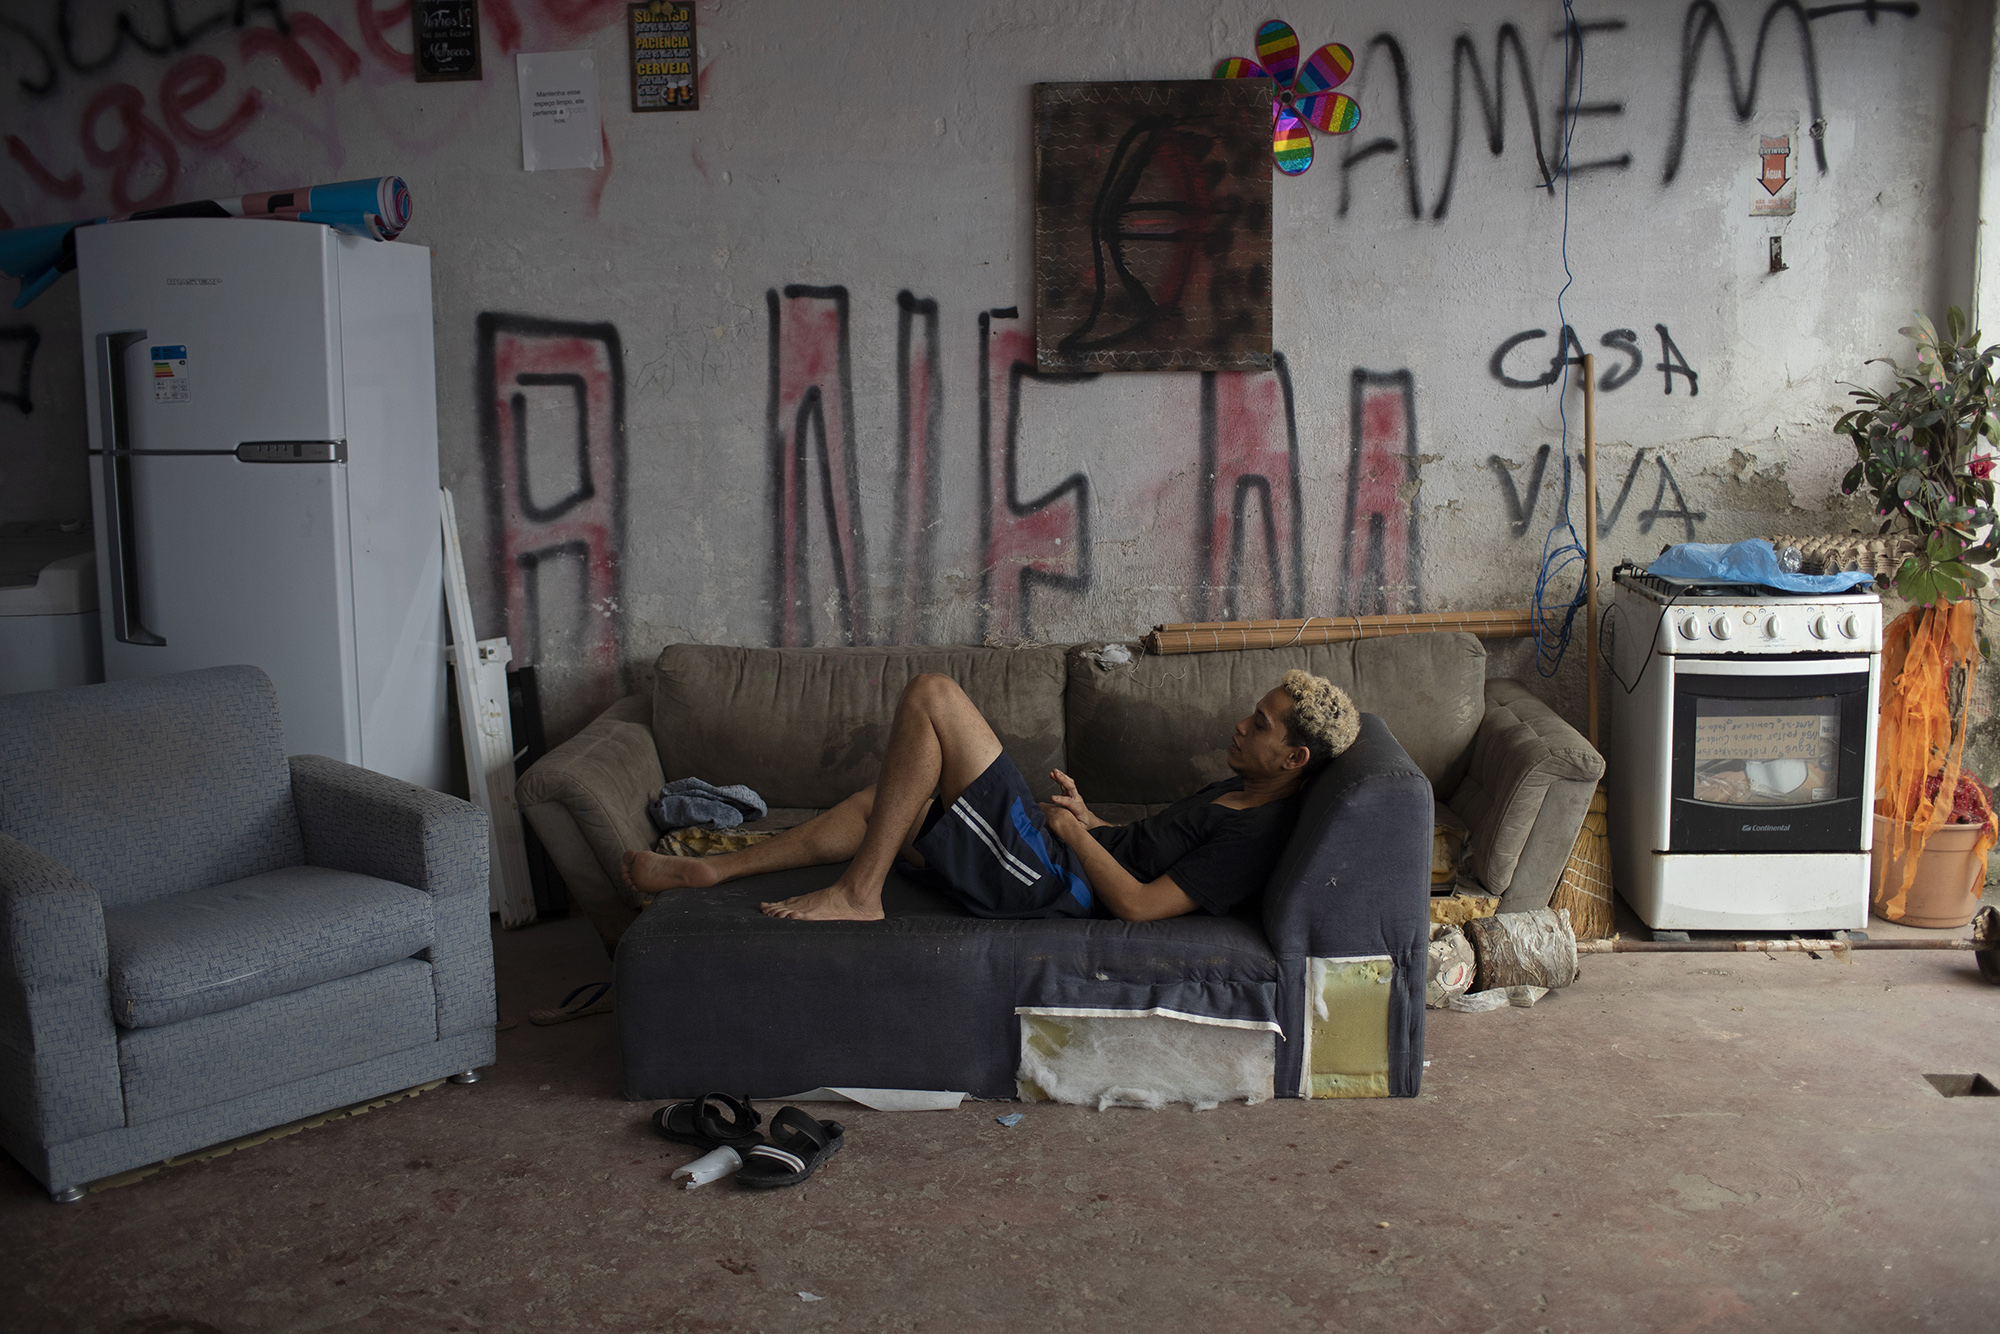 Transgender Igor rests on a couch in the courtyard of the squat known as Casa Nem, in Rio de Janeiro, Brazil, Wednesday, July 8, 2020. The six-floor building is home to members of the LGBTQ commuity riding out the pandemic behind closed doors. (AP Photo/Silvia Izquierdo)